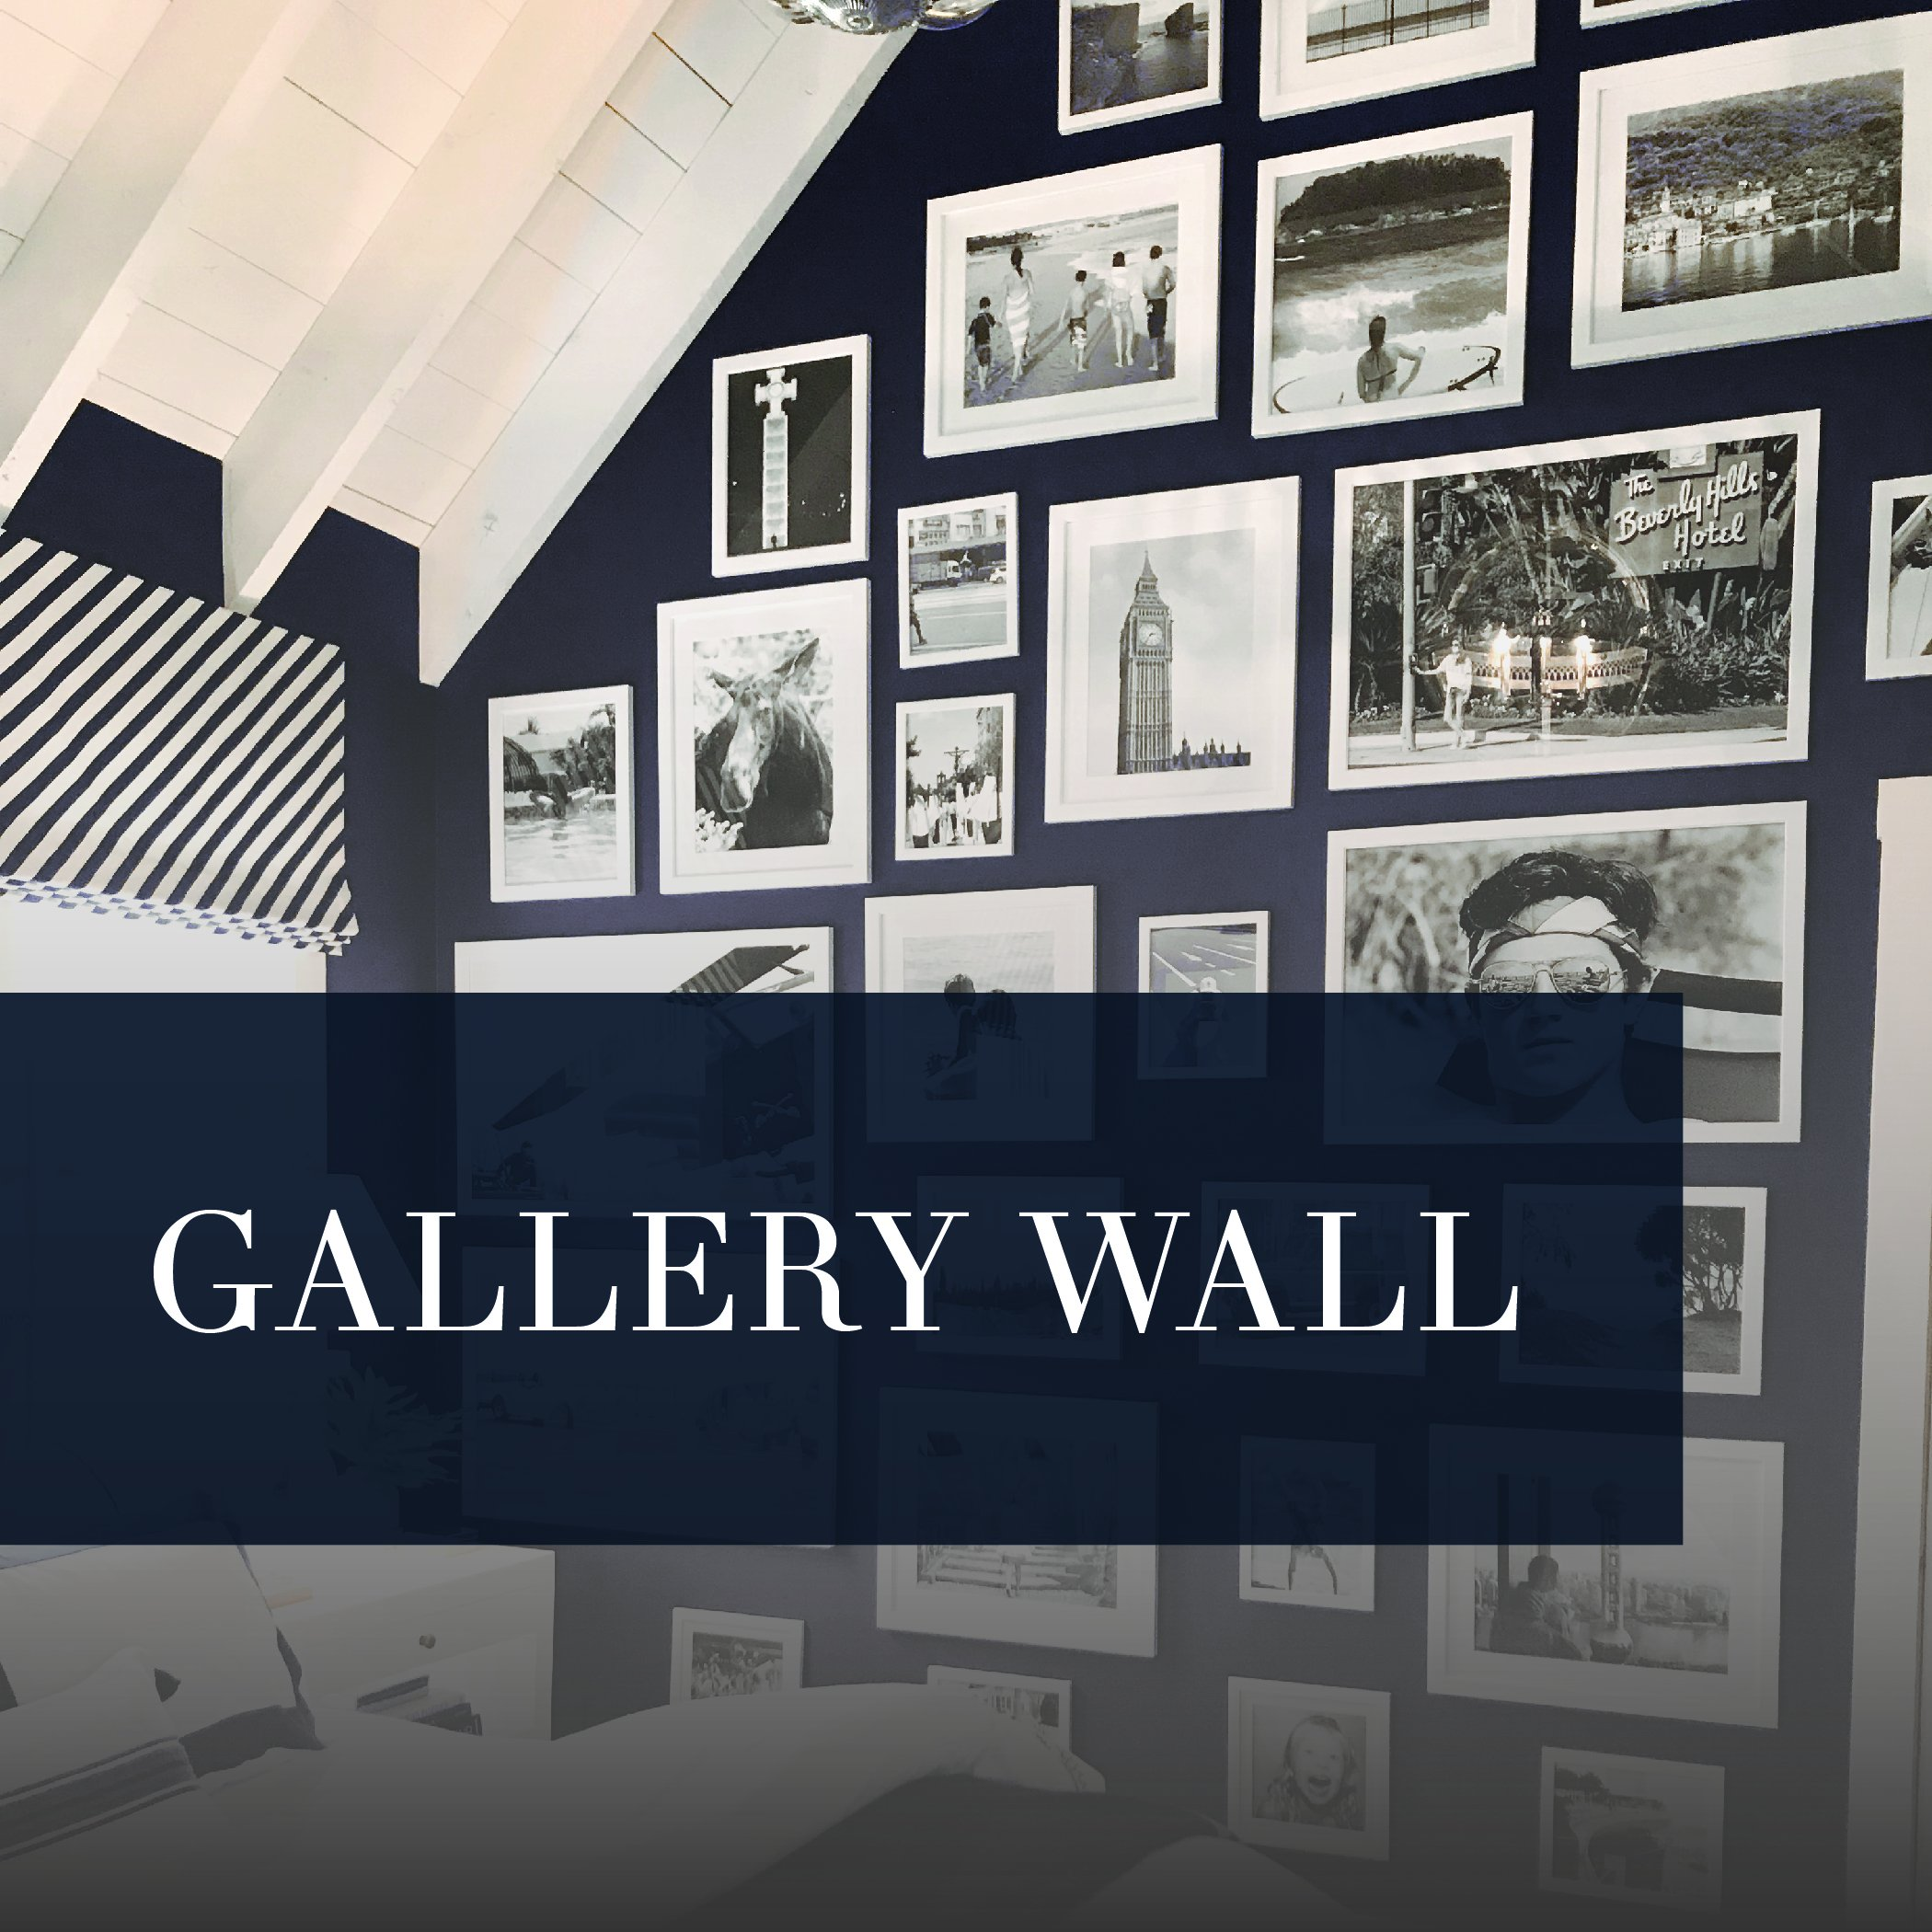 CASE STUDY: Gallery Wall… From Rendering To Install